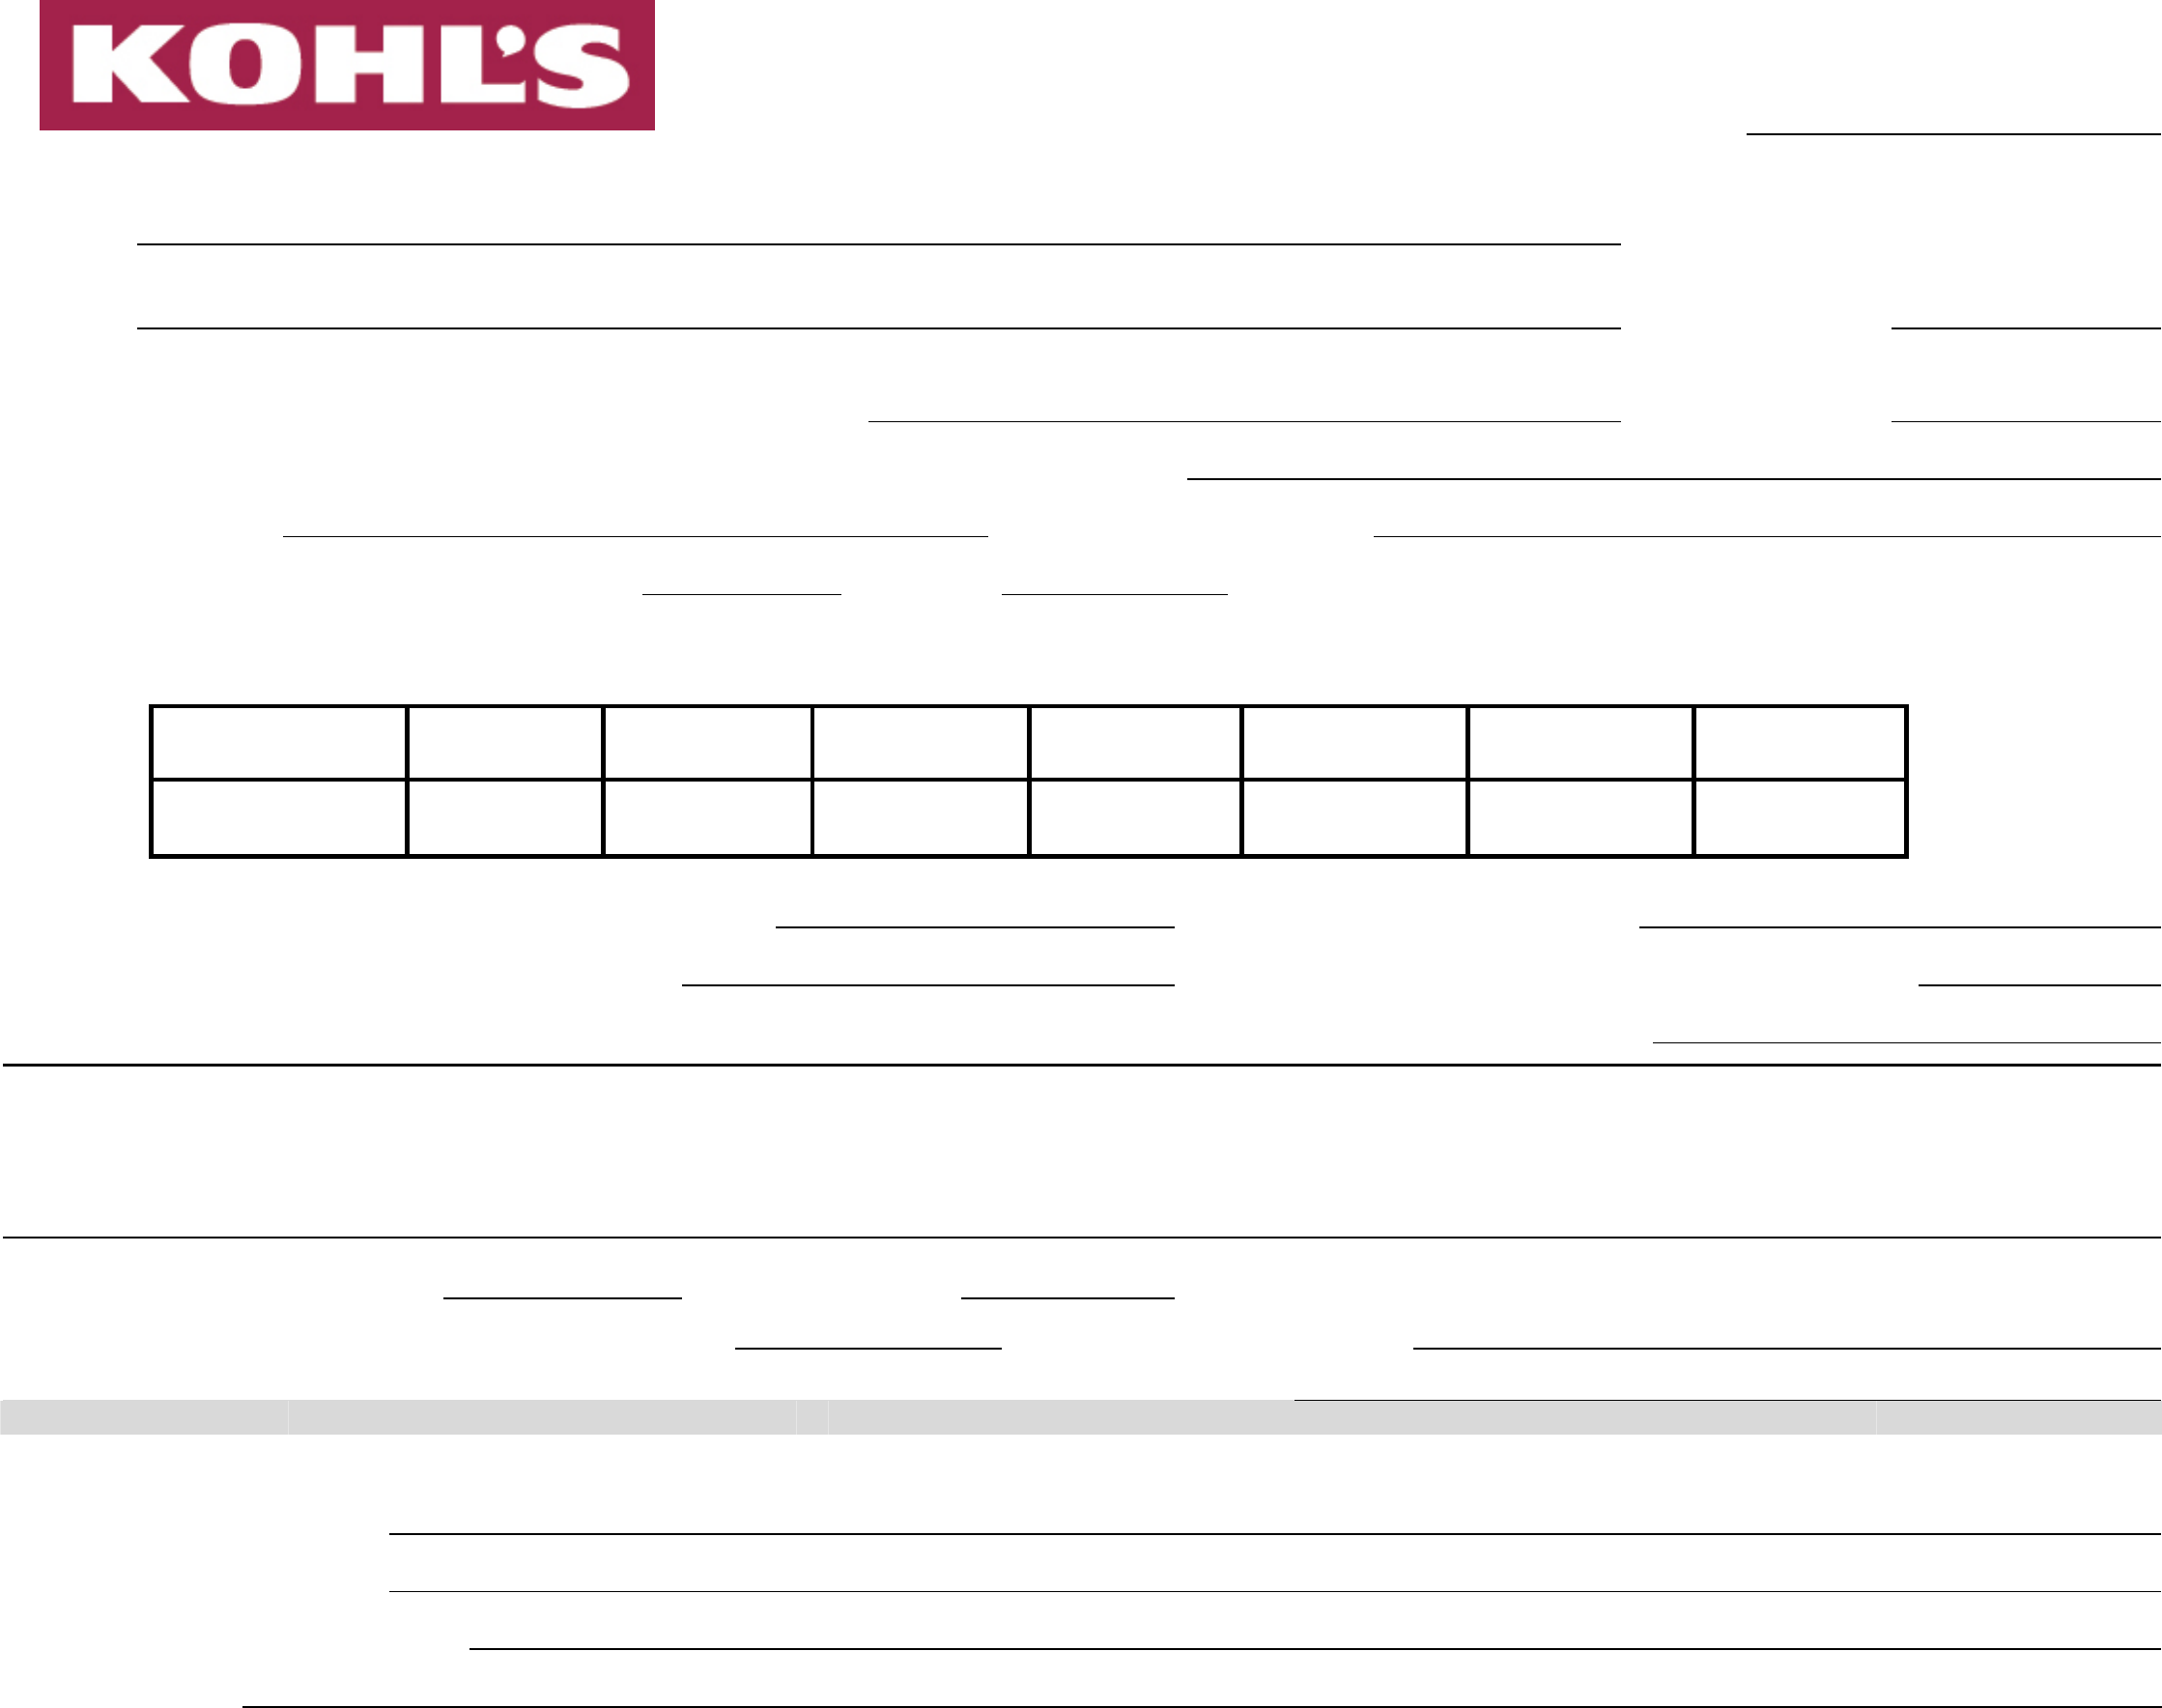 kohl 39 s employment application form free download